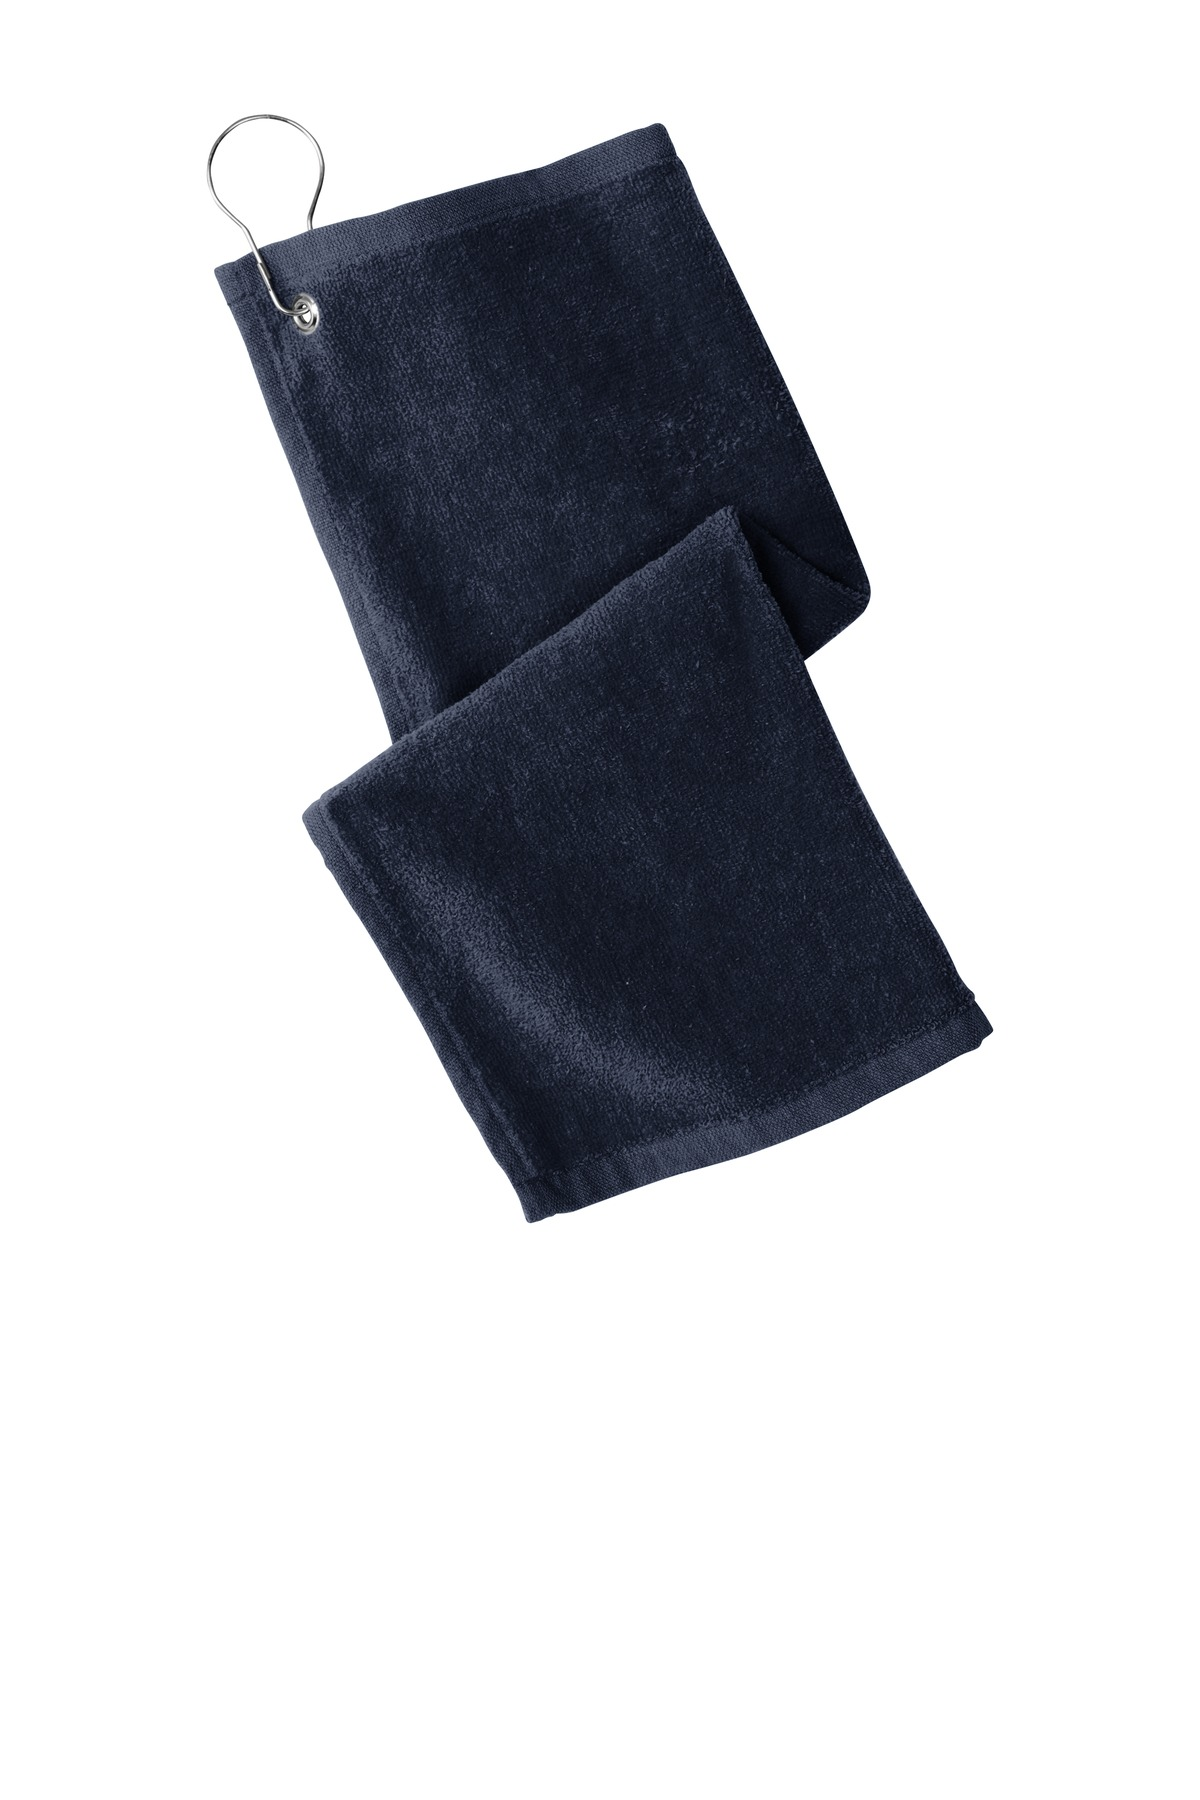 Port Authority  ®  Grommeted Hemmed Towel PT400 - Navy